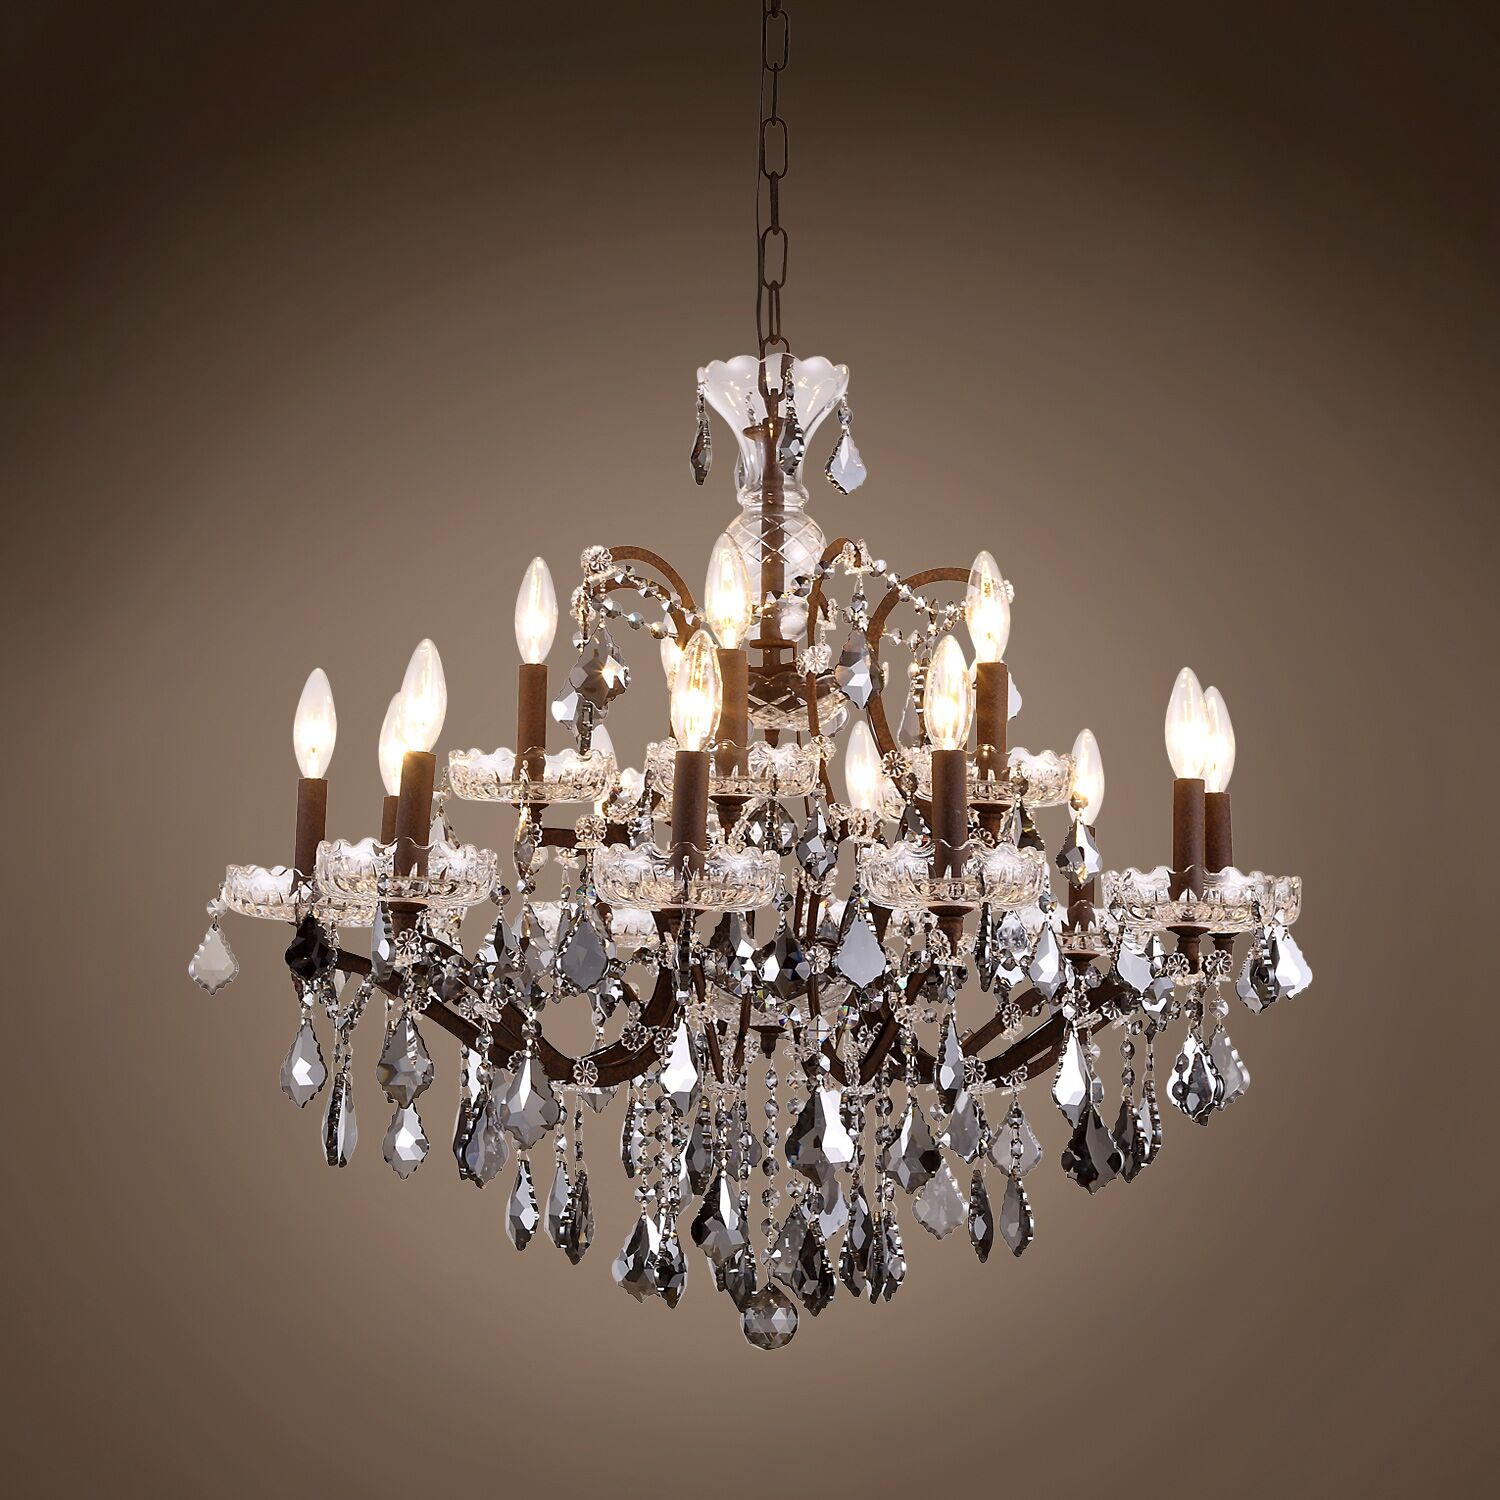 Chantrell 15-Light Chandelier Finish: Rustic Iron, Crystal Color: Smoke